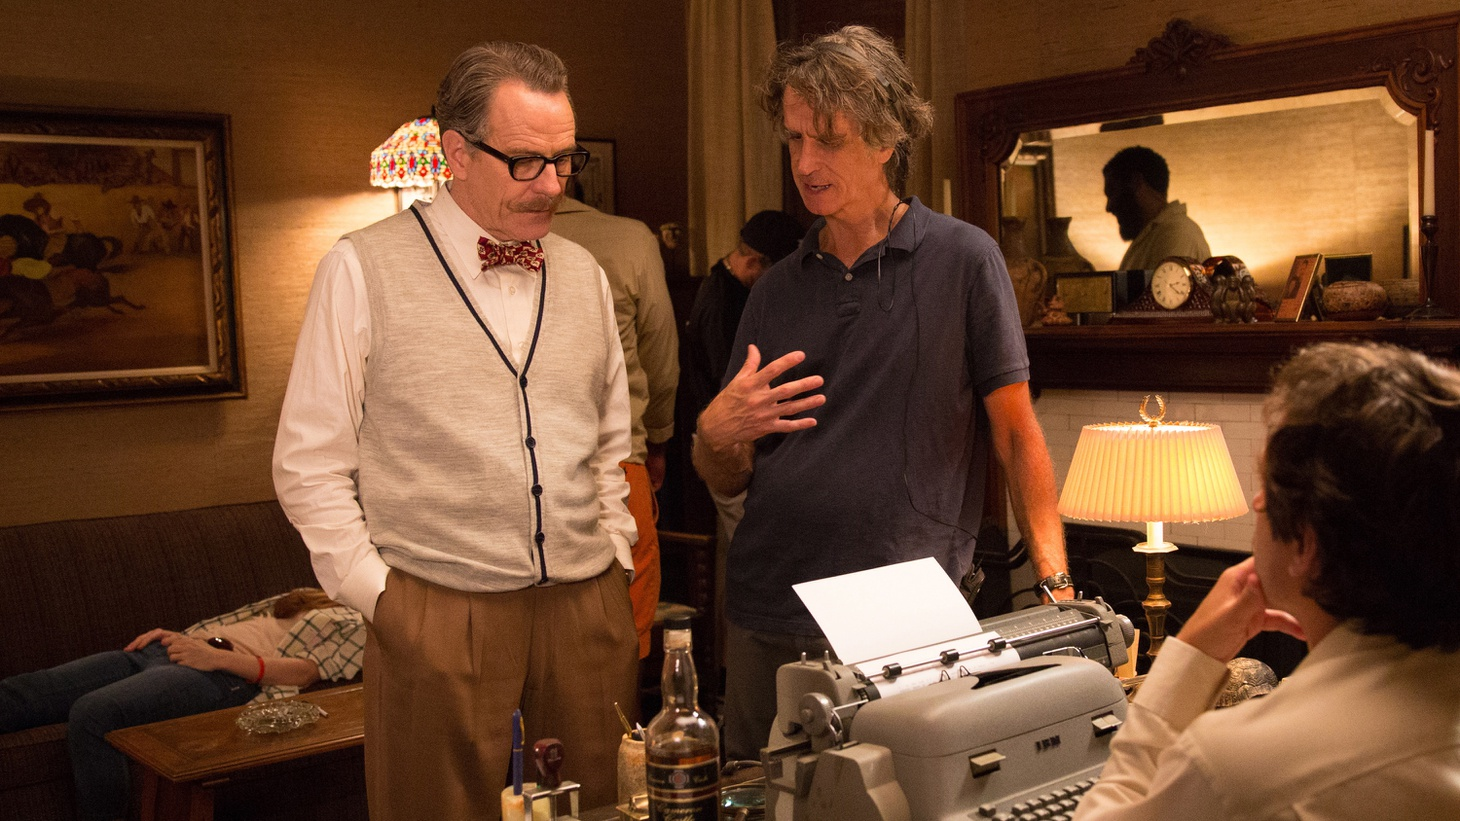 Bryan Cranston and Trumbo director Jay Roach tell us how they ended up making a biopic about blacklisted screenwriter Dalton Trumbo and what drew them to the story of Hollywood's darkest hour.